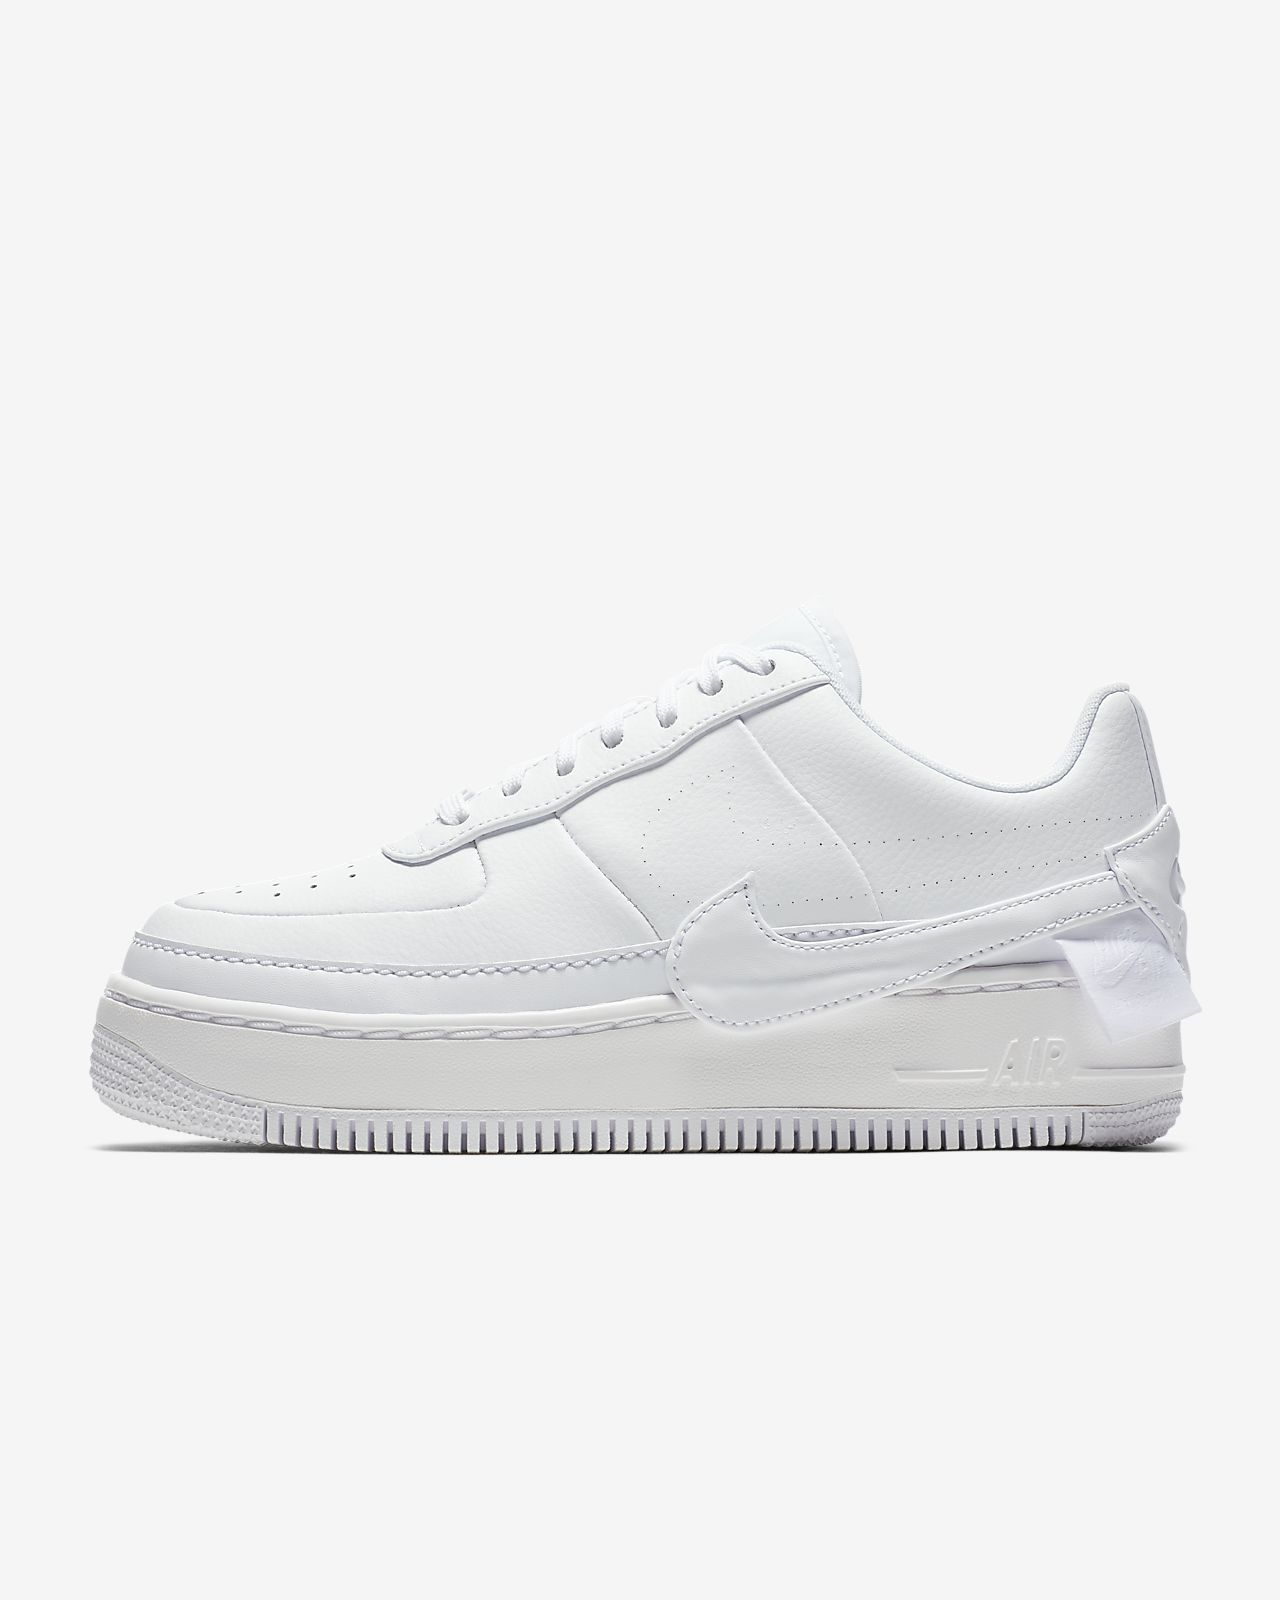 available 50% off differently Nike Air Force 1 Jester XX Shoe